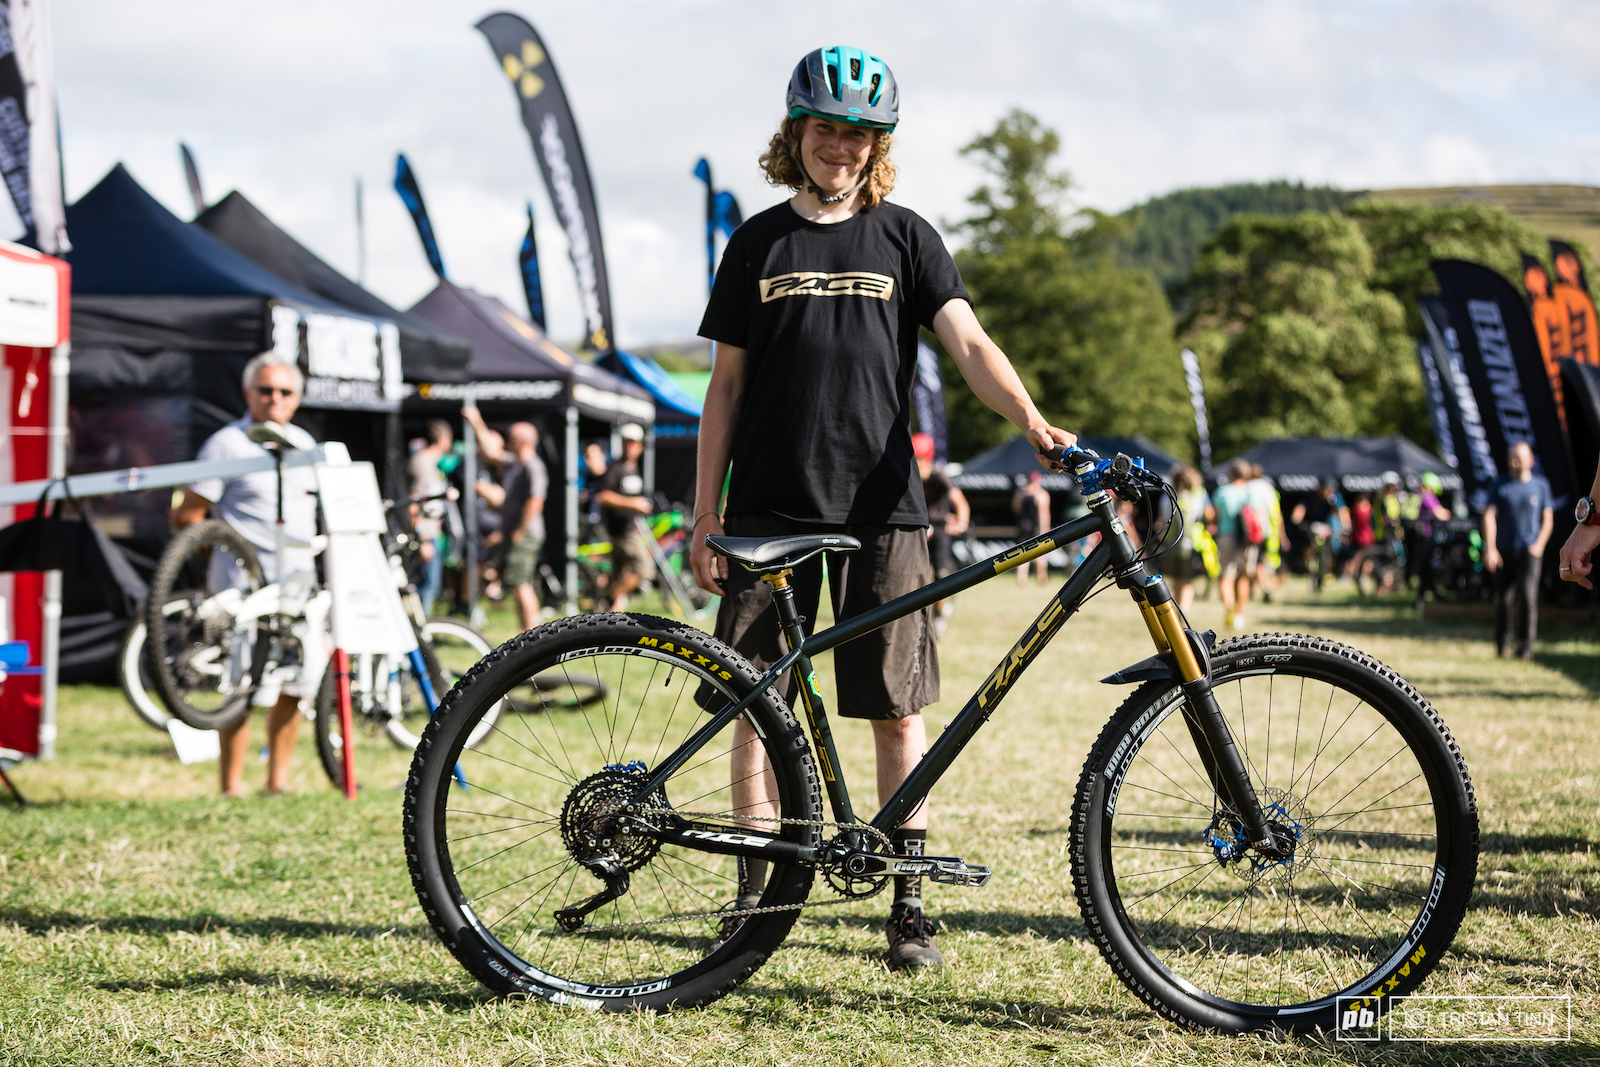 Ben Smith-Price and his Pace RC129 29er hardtail